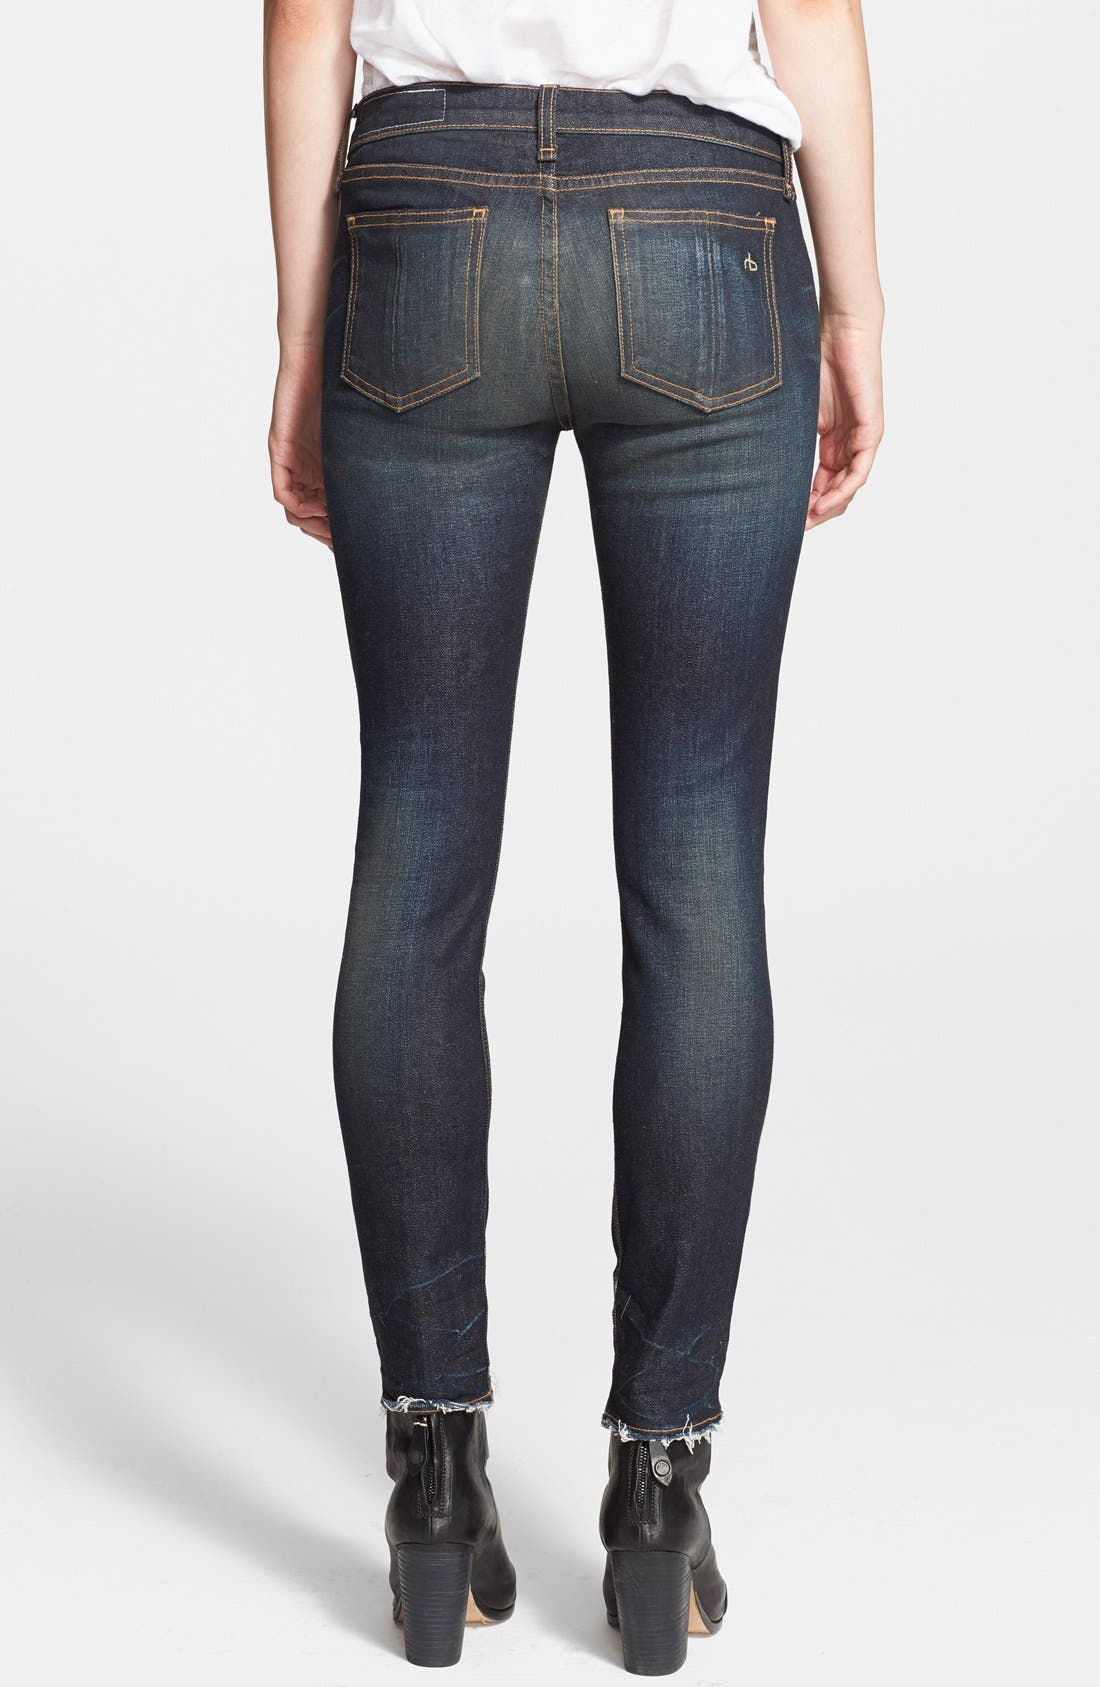 JEAN 'The Crop' Skinny Jeans,                             Alternate thumbnail 2, color,                             401